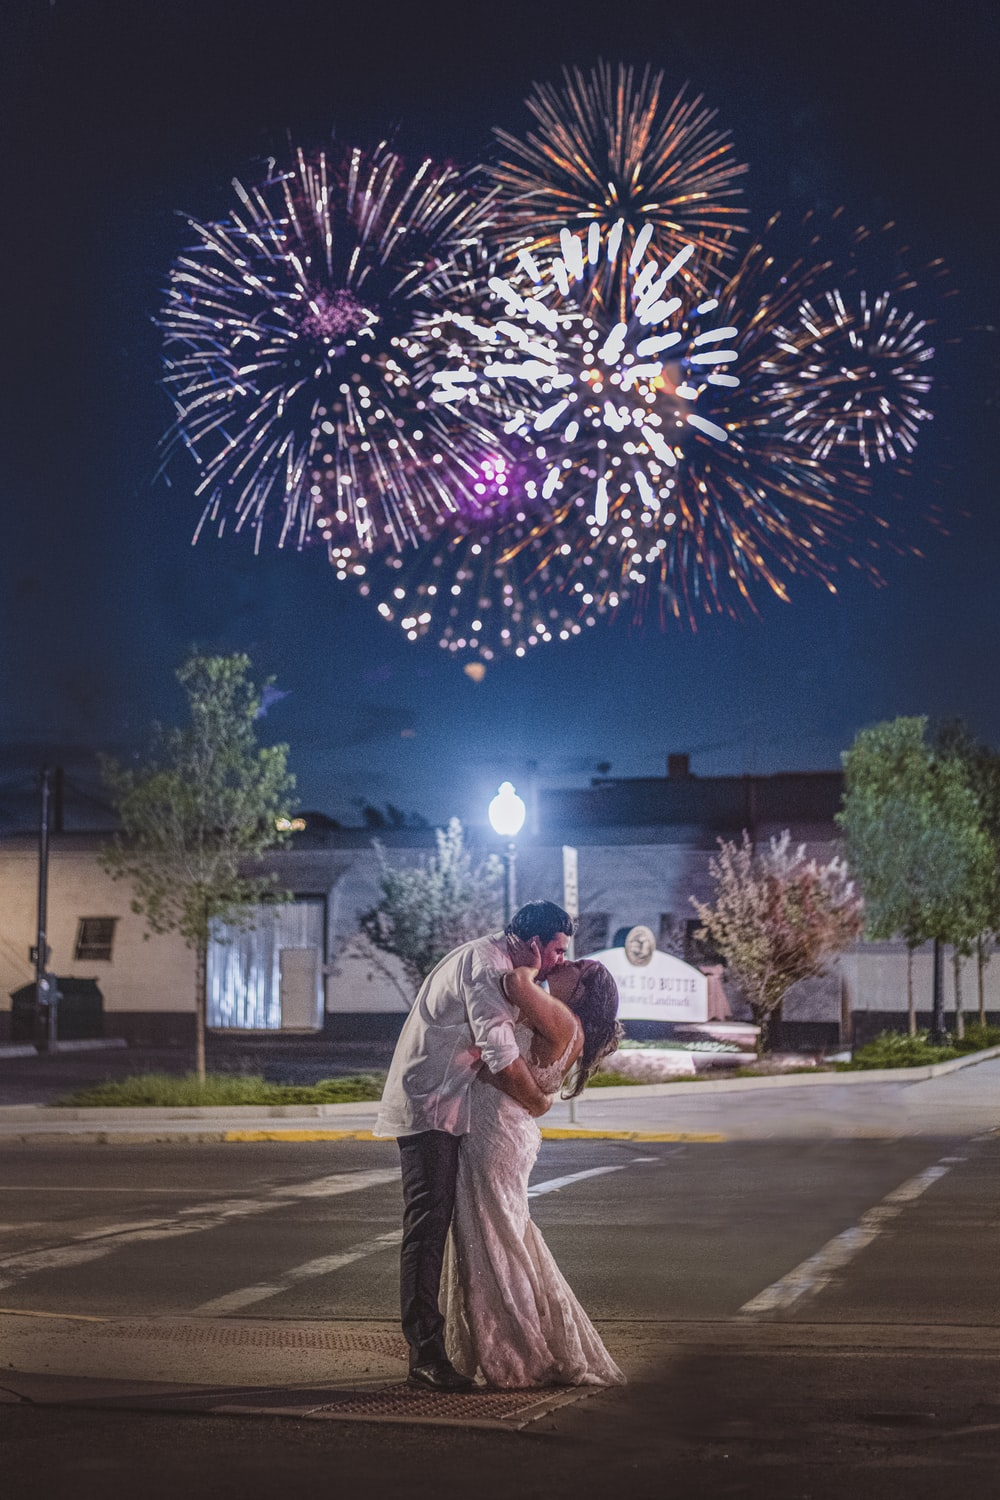 man in white dress shirt standing near pink and white fireworks during night time